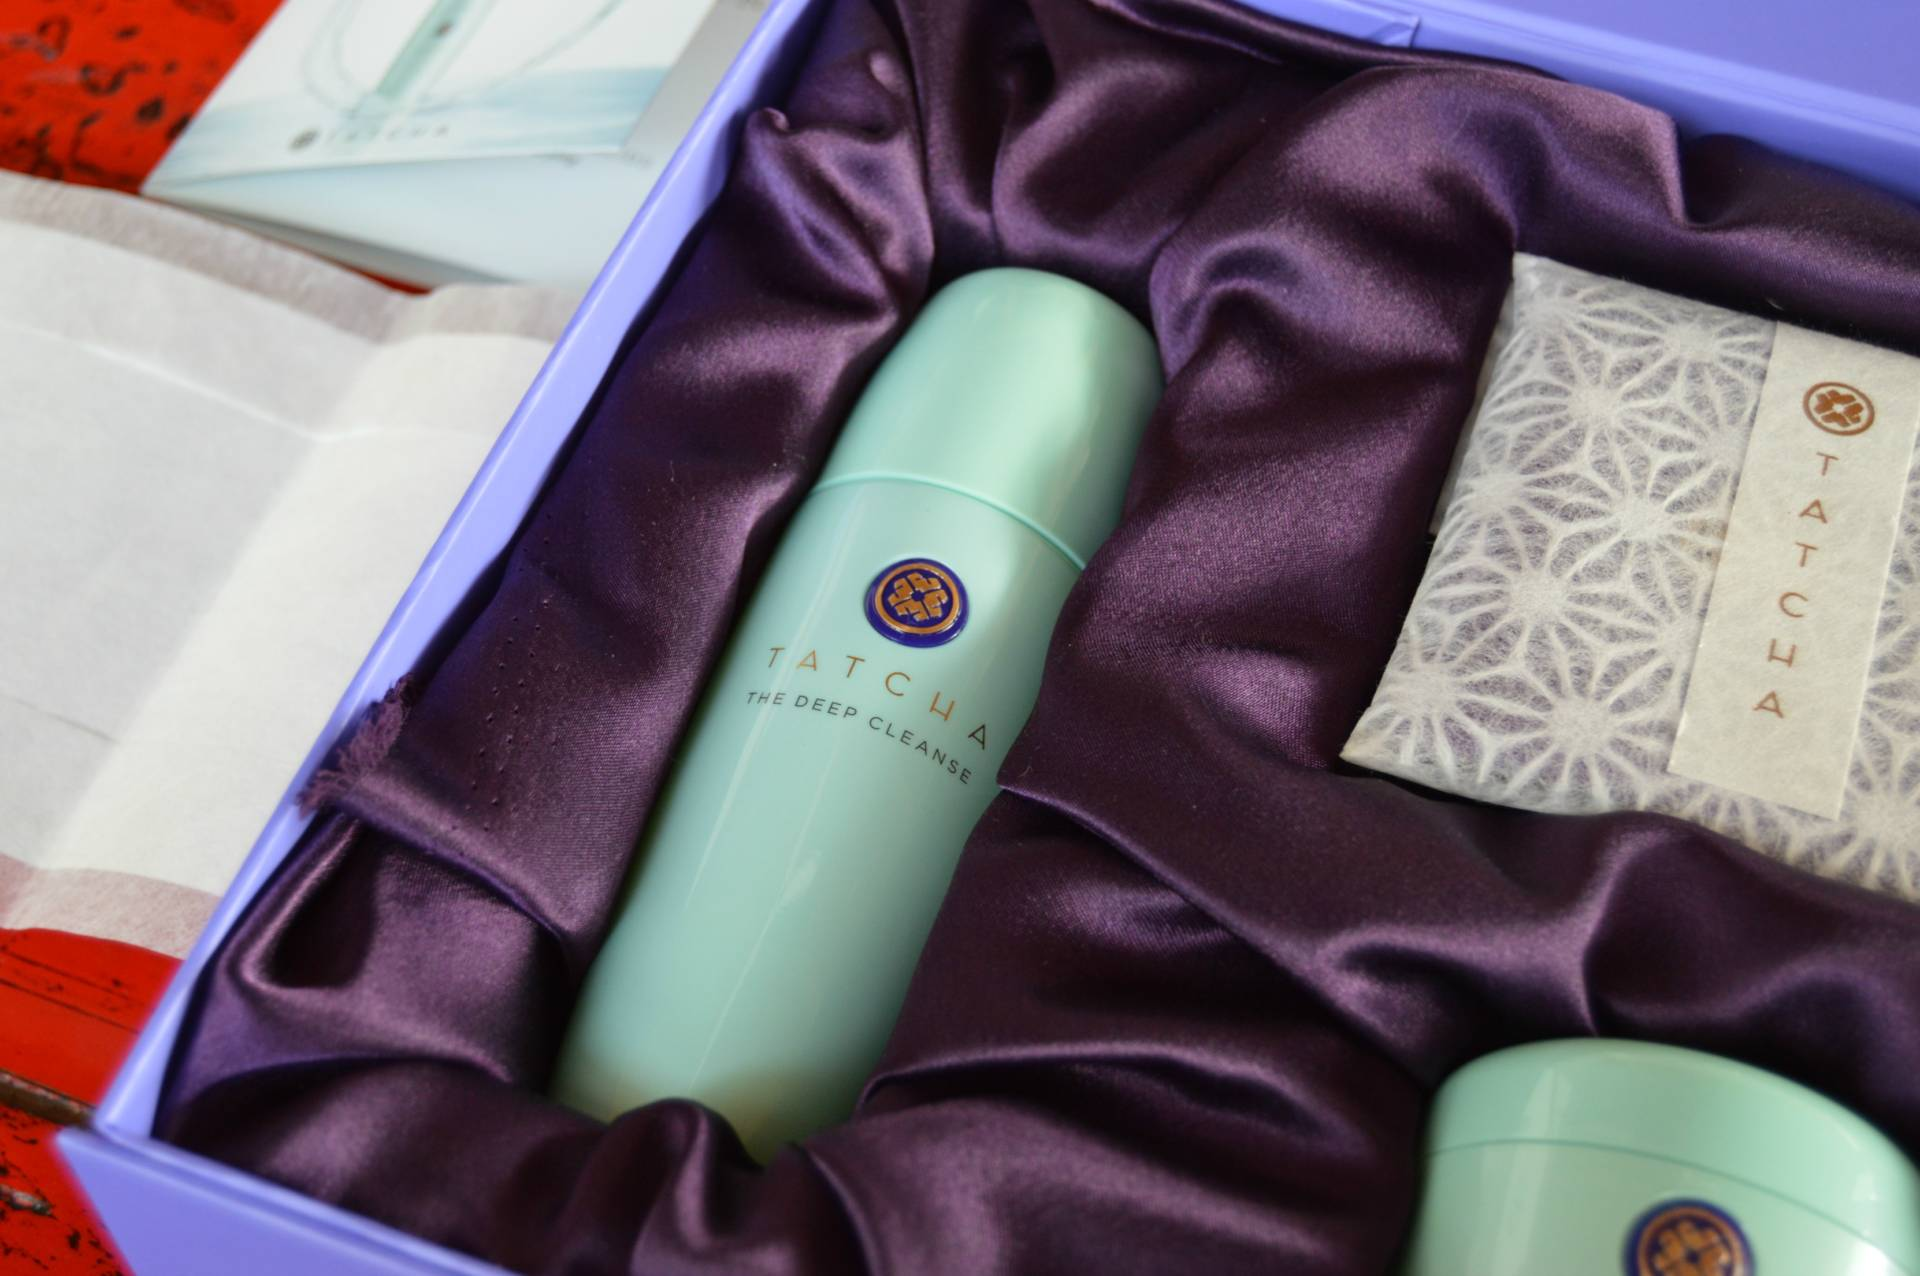 Omgbart_Reviews_The_Deep_Cleanse_From_Tatcha_2.jpg